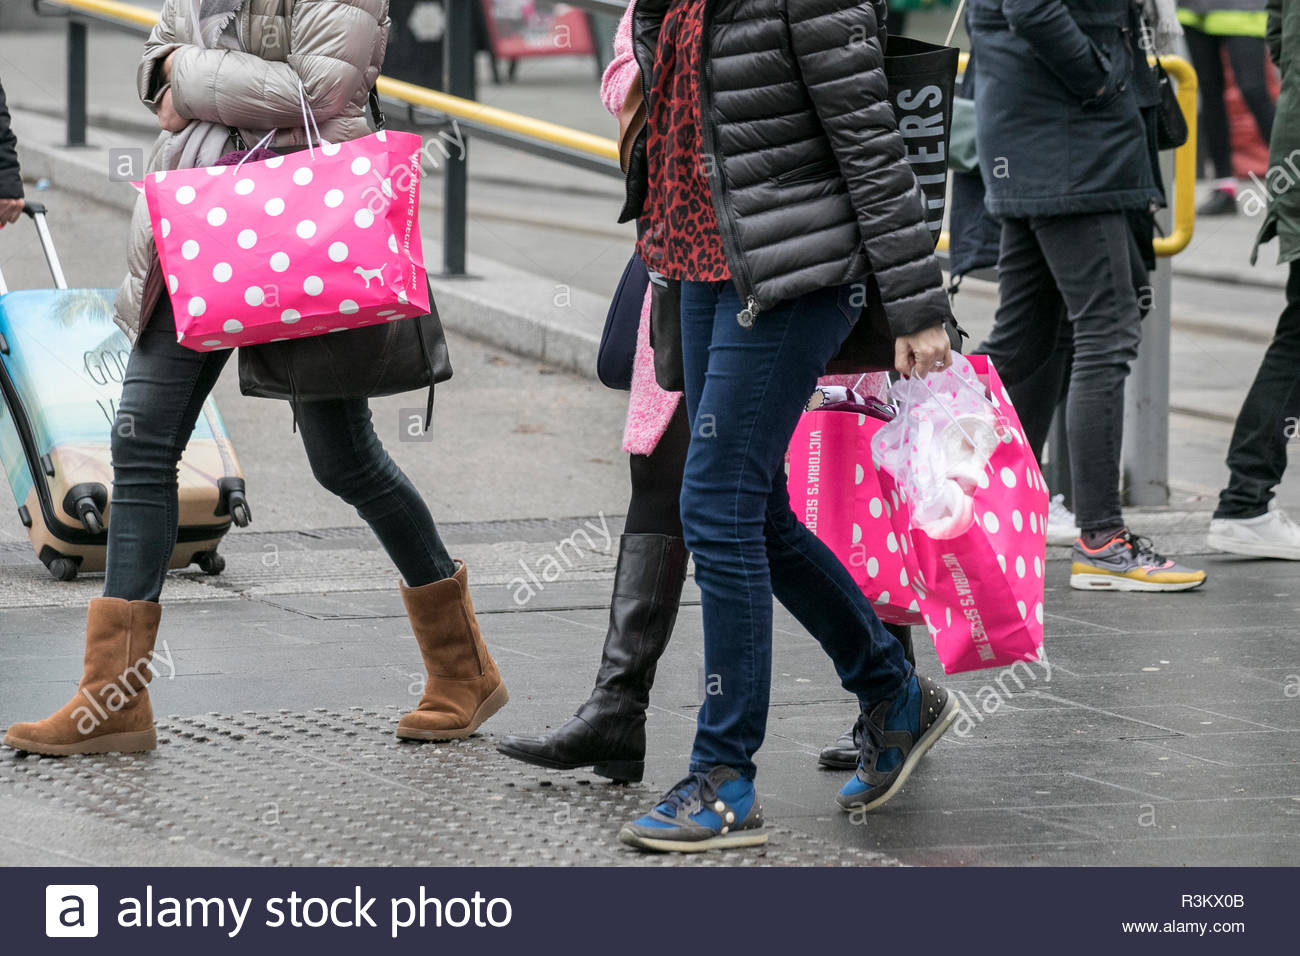 8d0544613a5 Black Friday Sales. 23rd November 2018. People flock to stores to bag high  street bargains on one of the biggest shopping days of the year. victoria s  ...